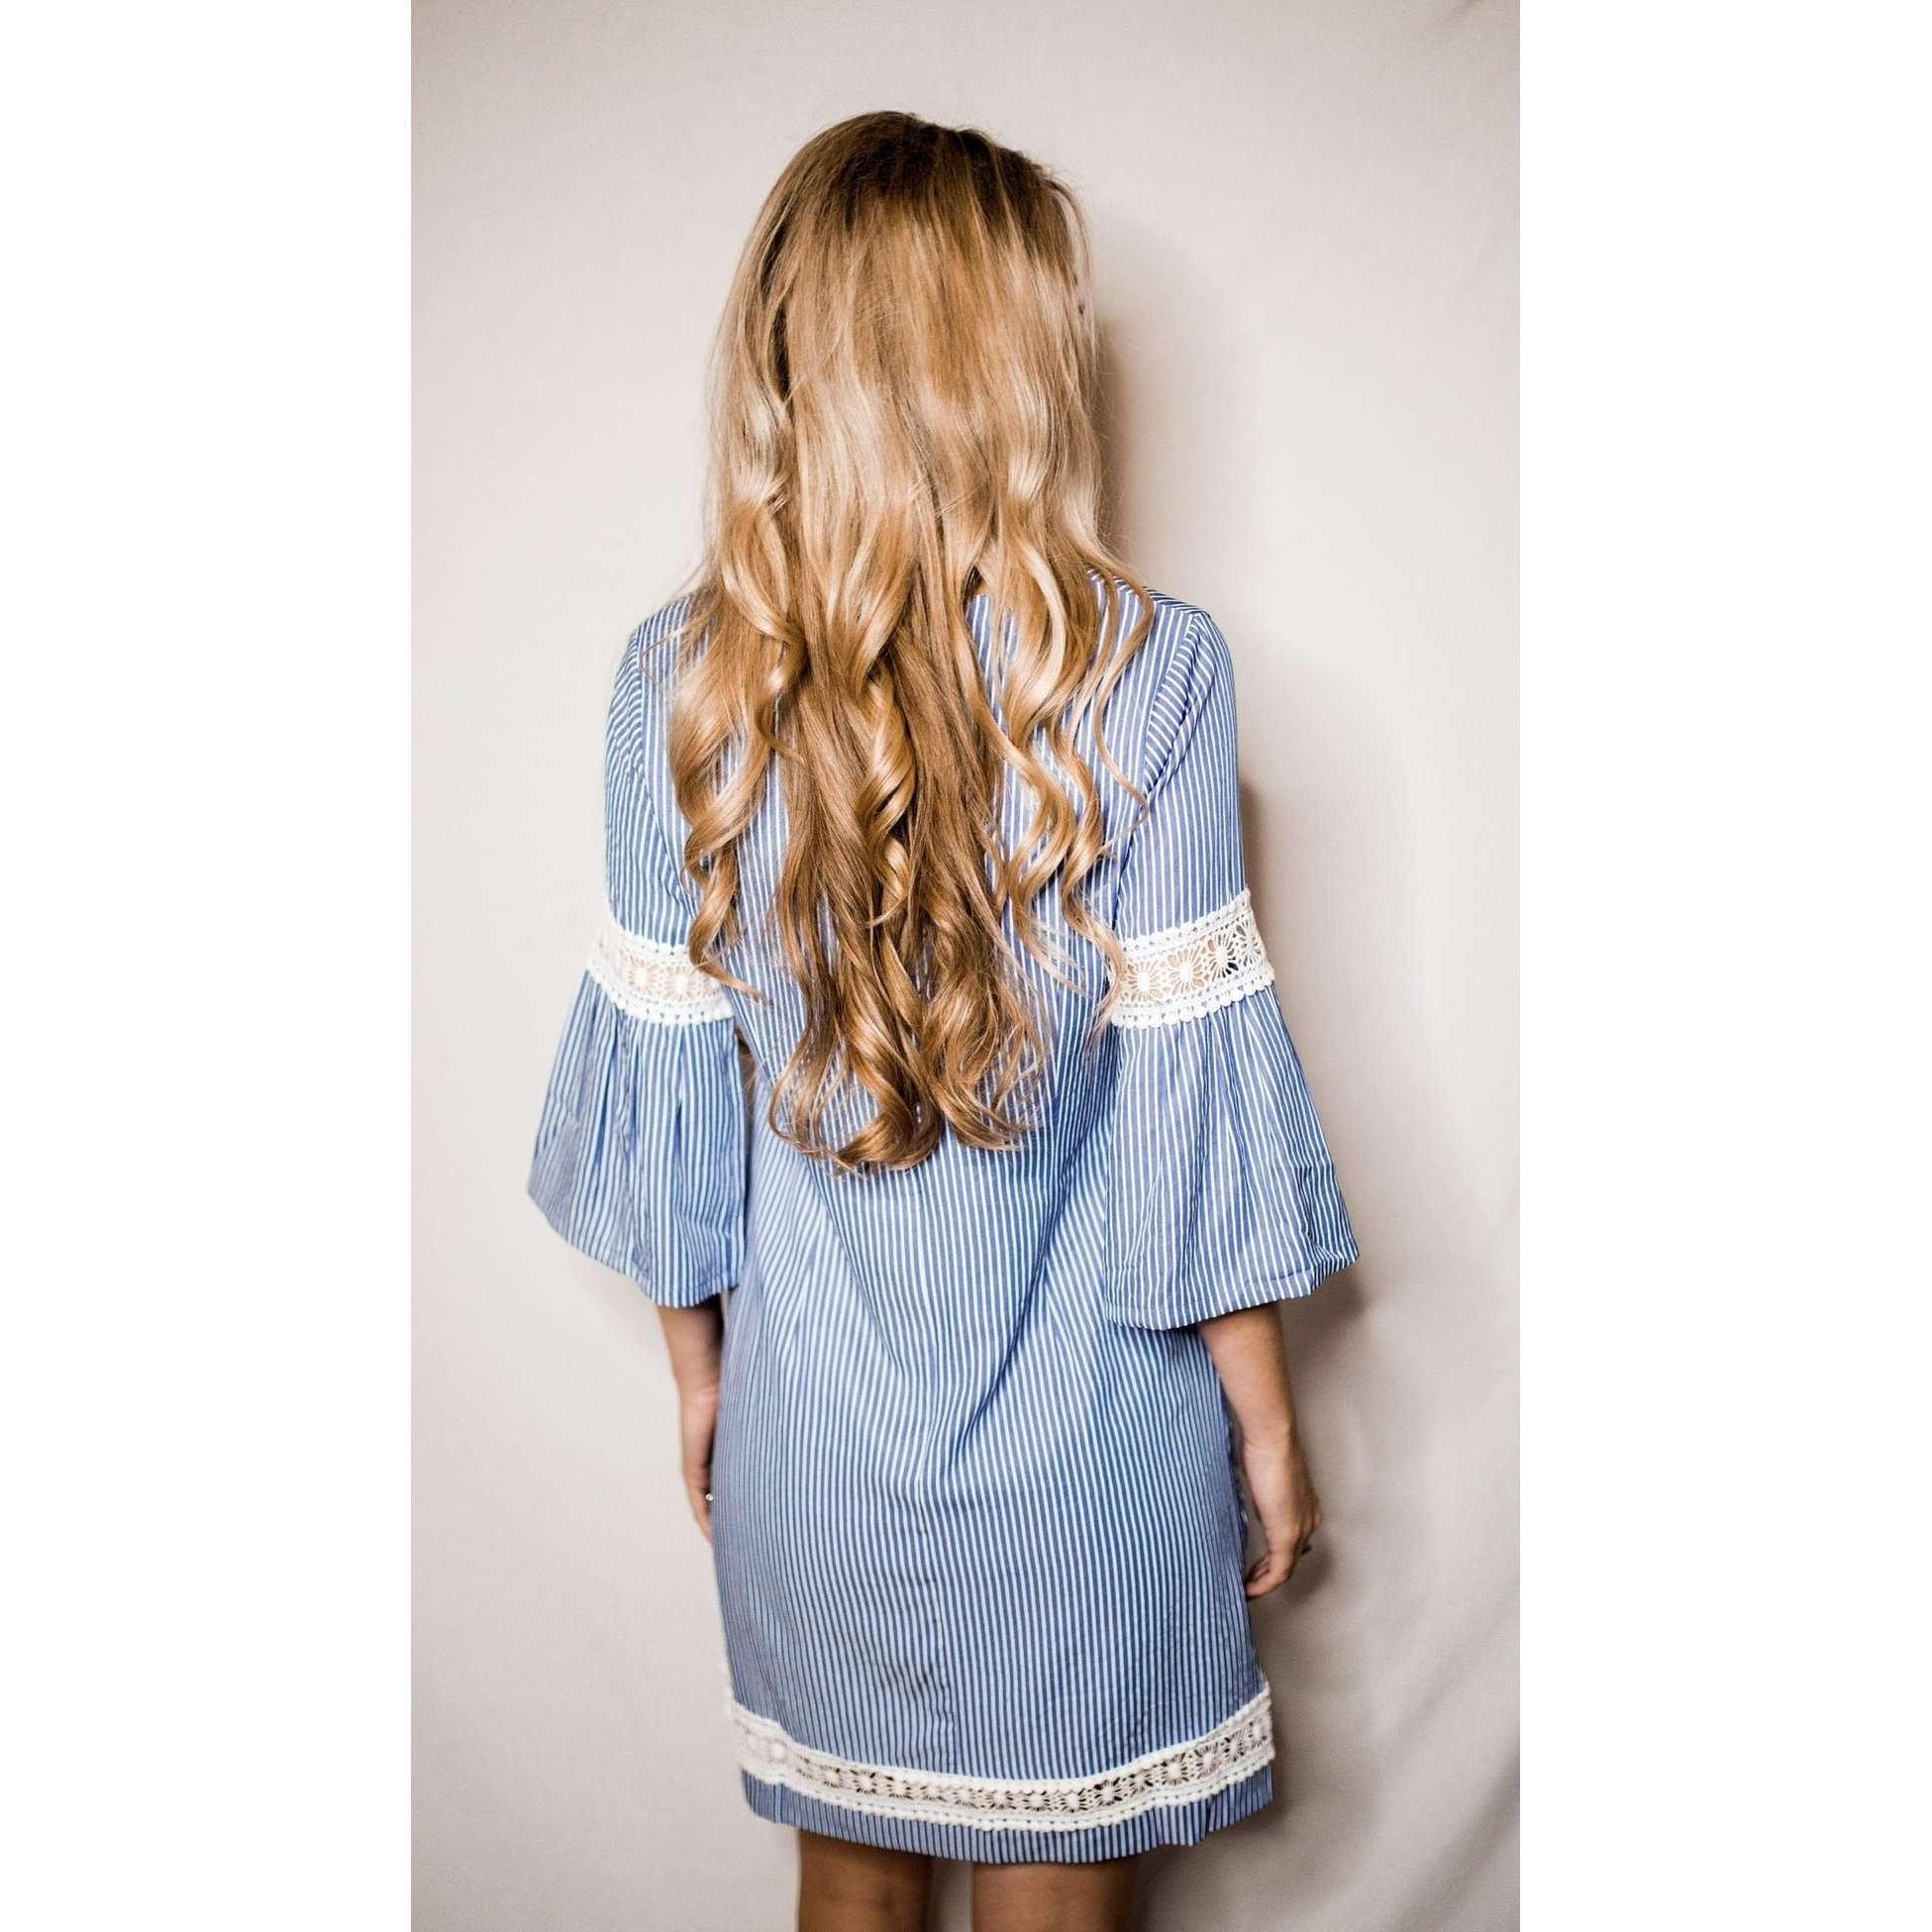 8.28 Boutique:JADE,Jade Blue and White Striped Lace Dress,Dress